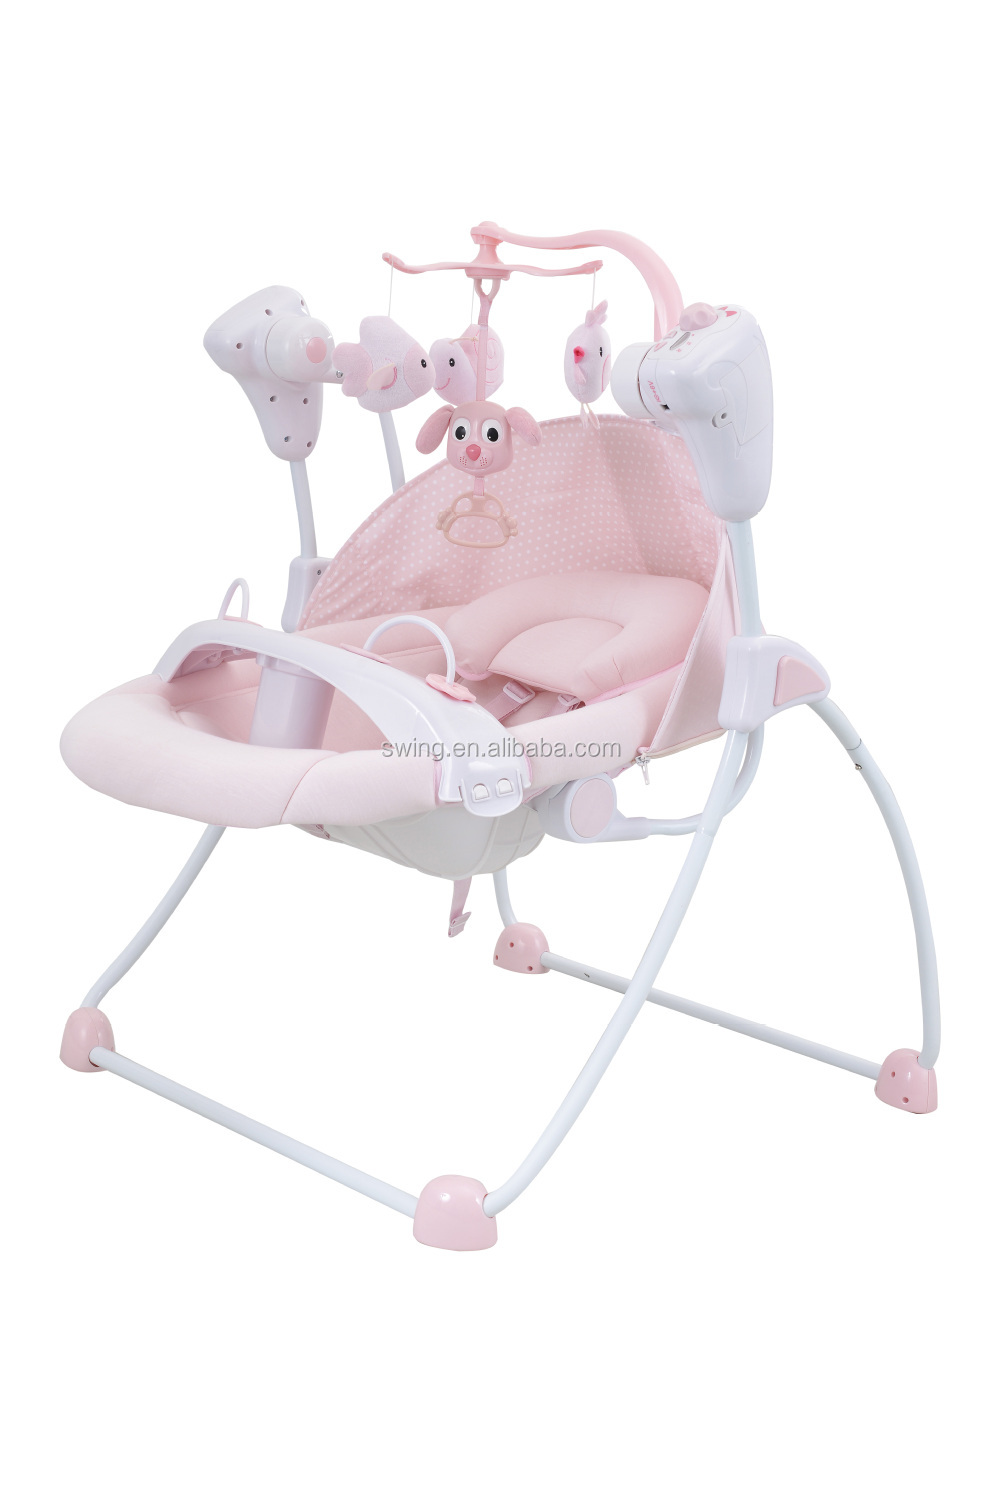 Selling Electric Baby Doll Swing With Dinner Plate And